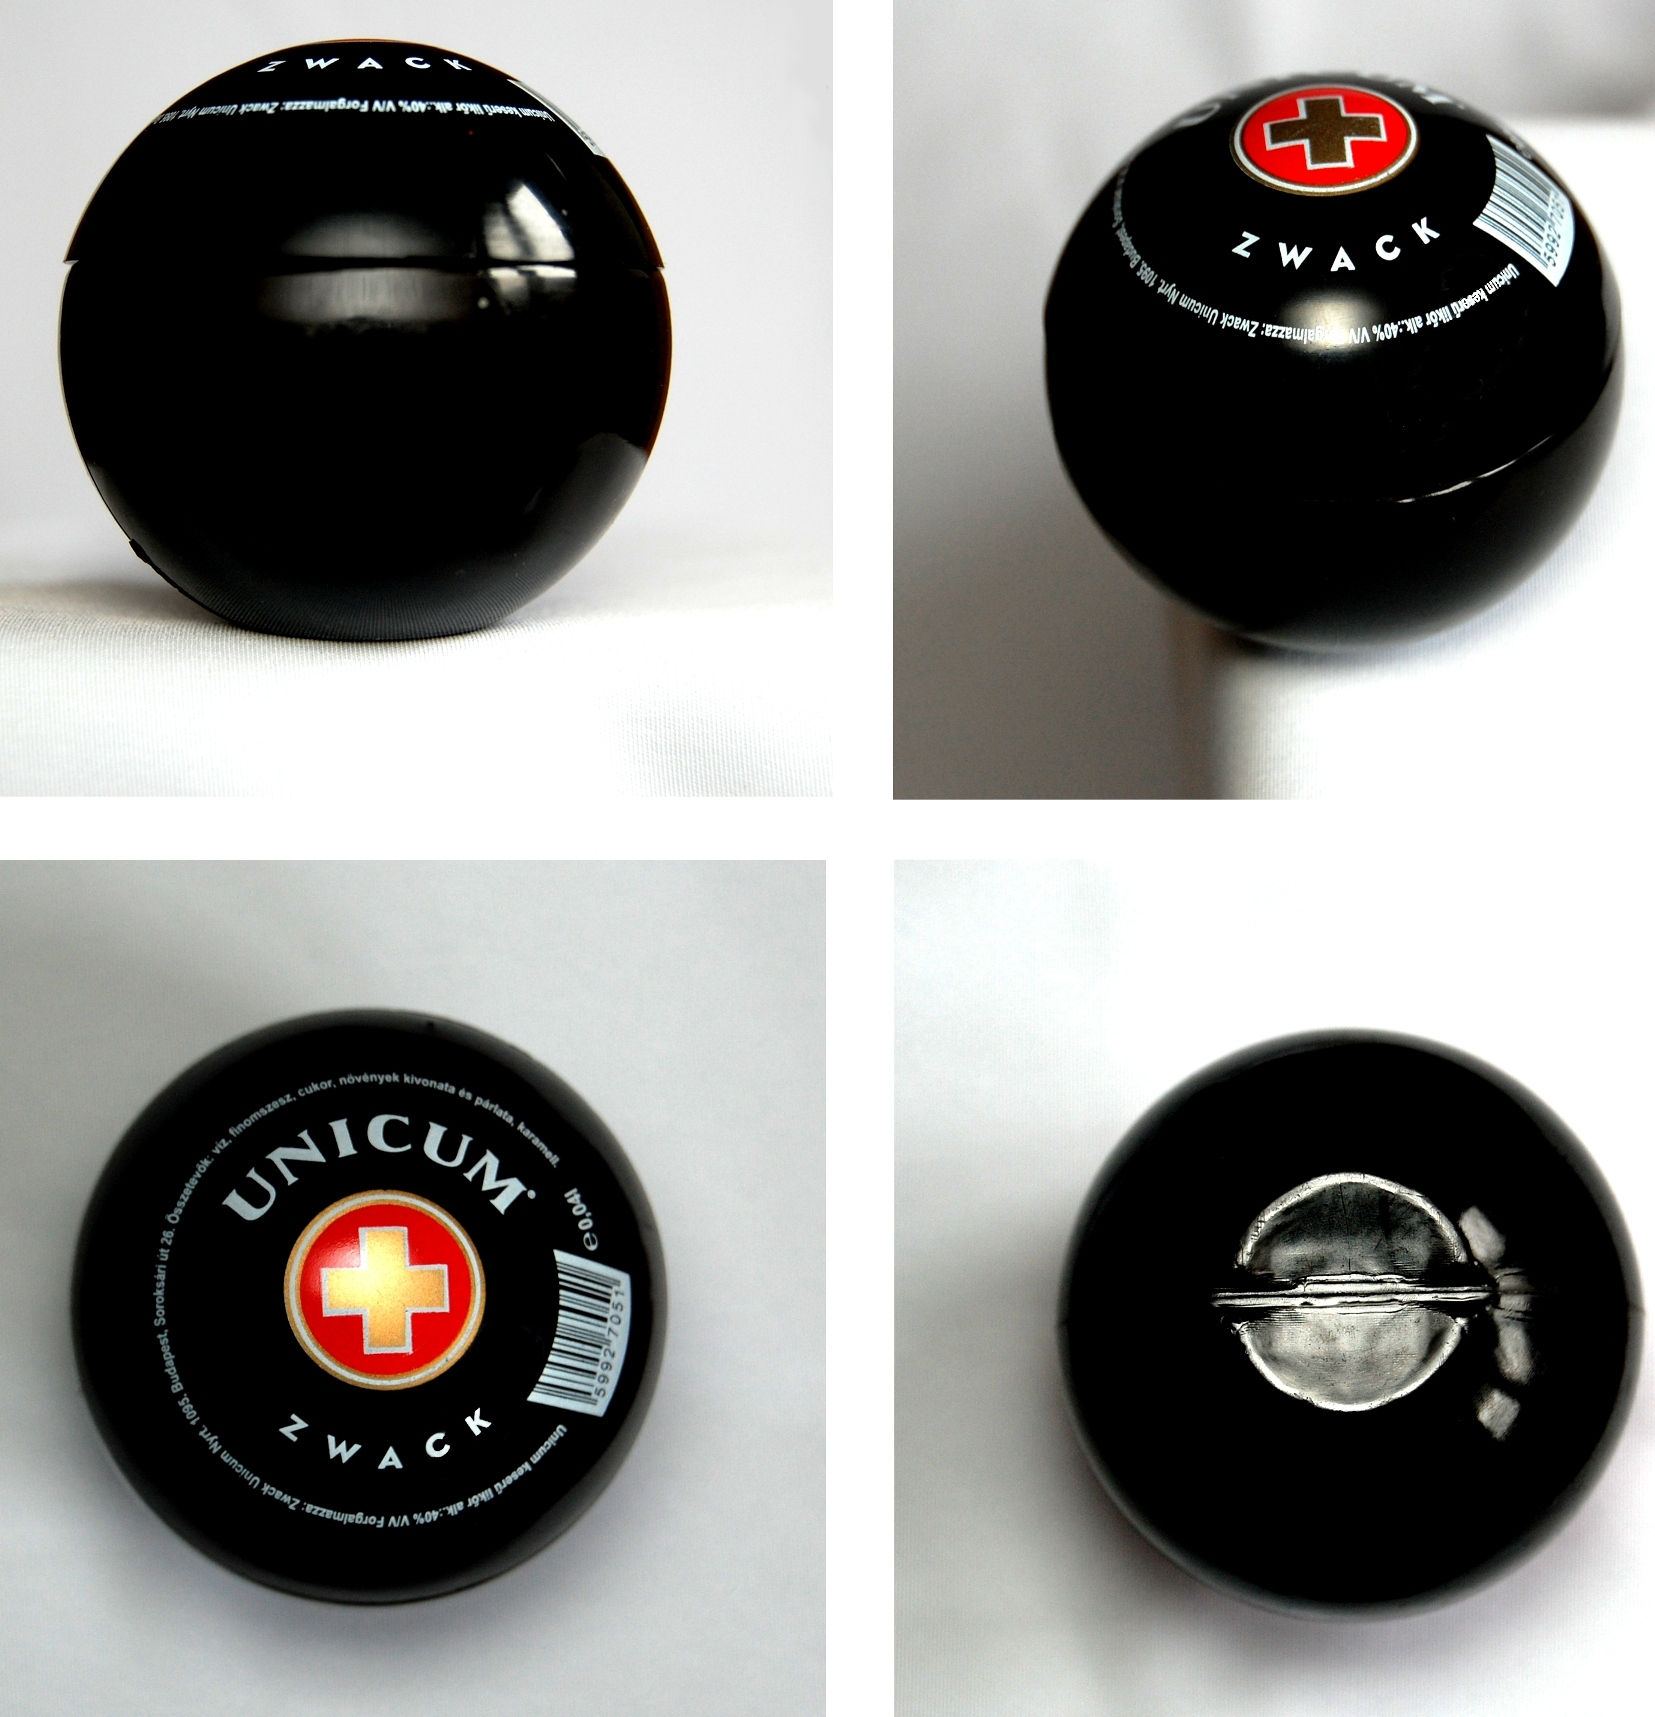 Trademark information for ZWACK UNICUM from CTM - by Markify